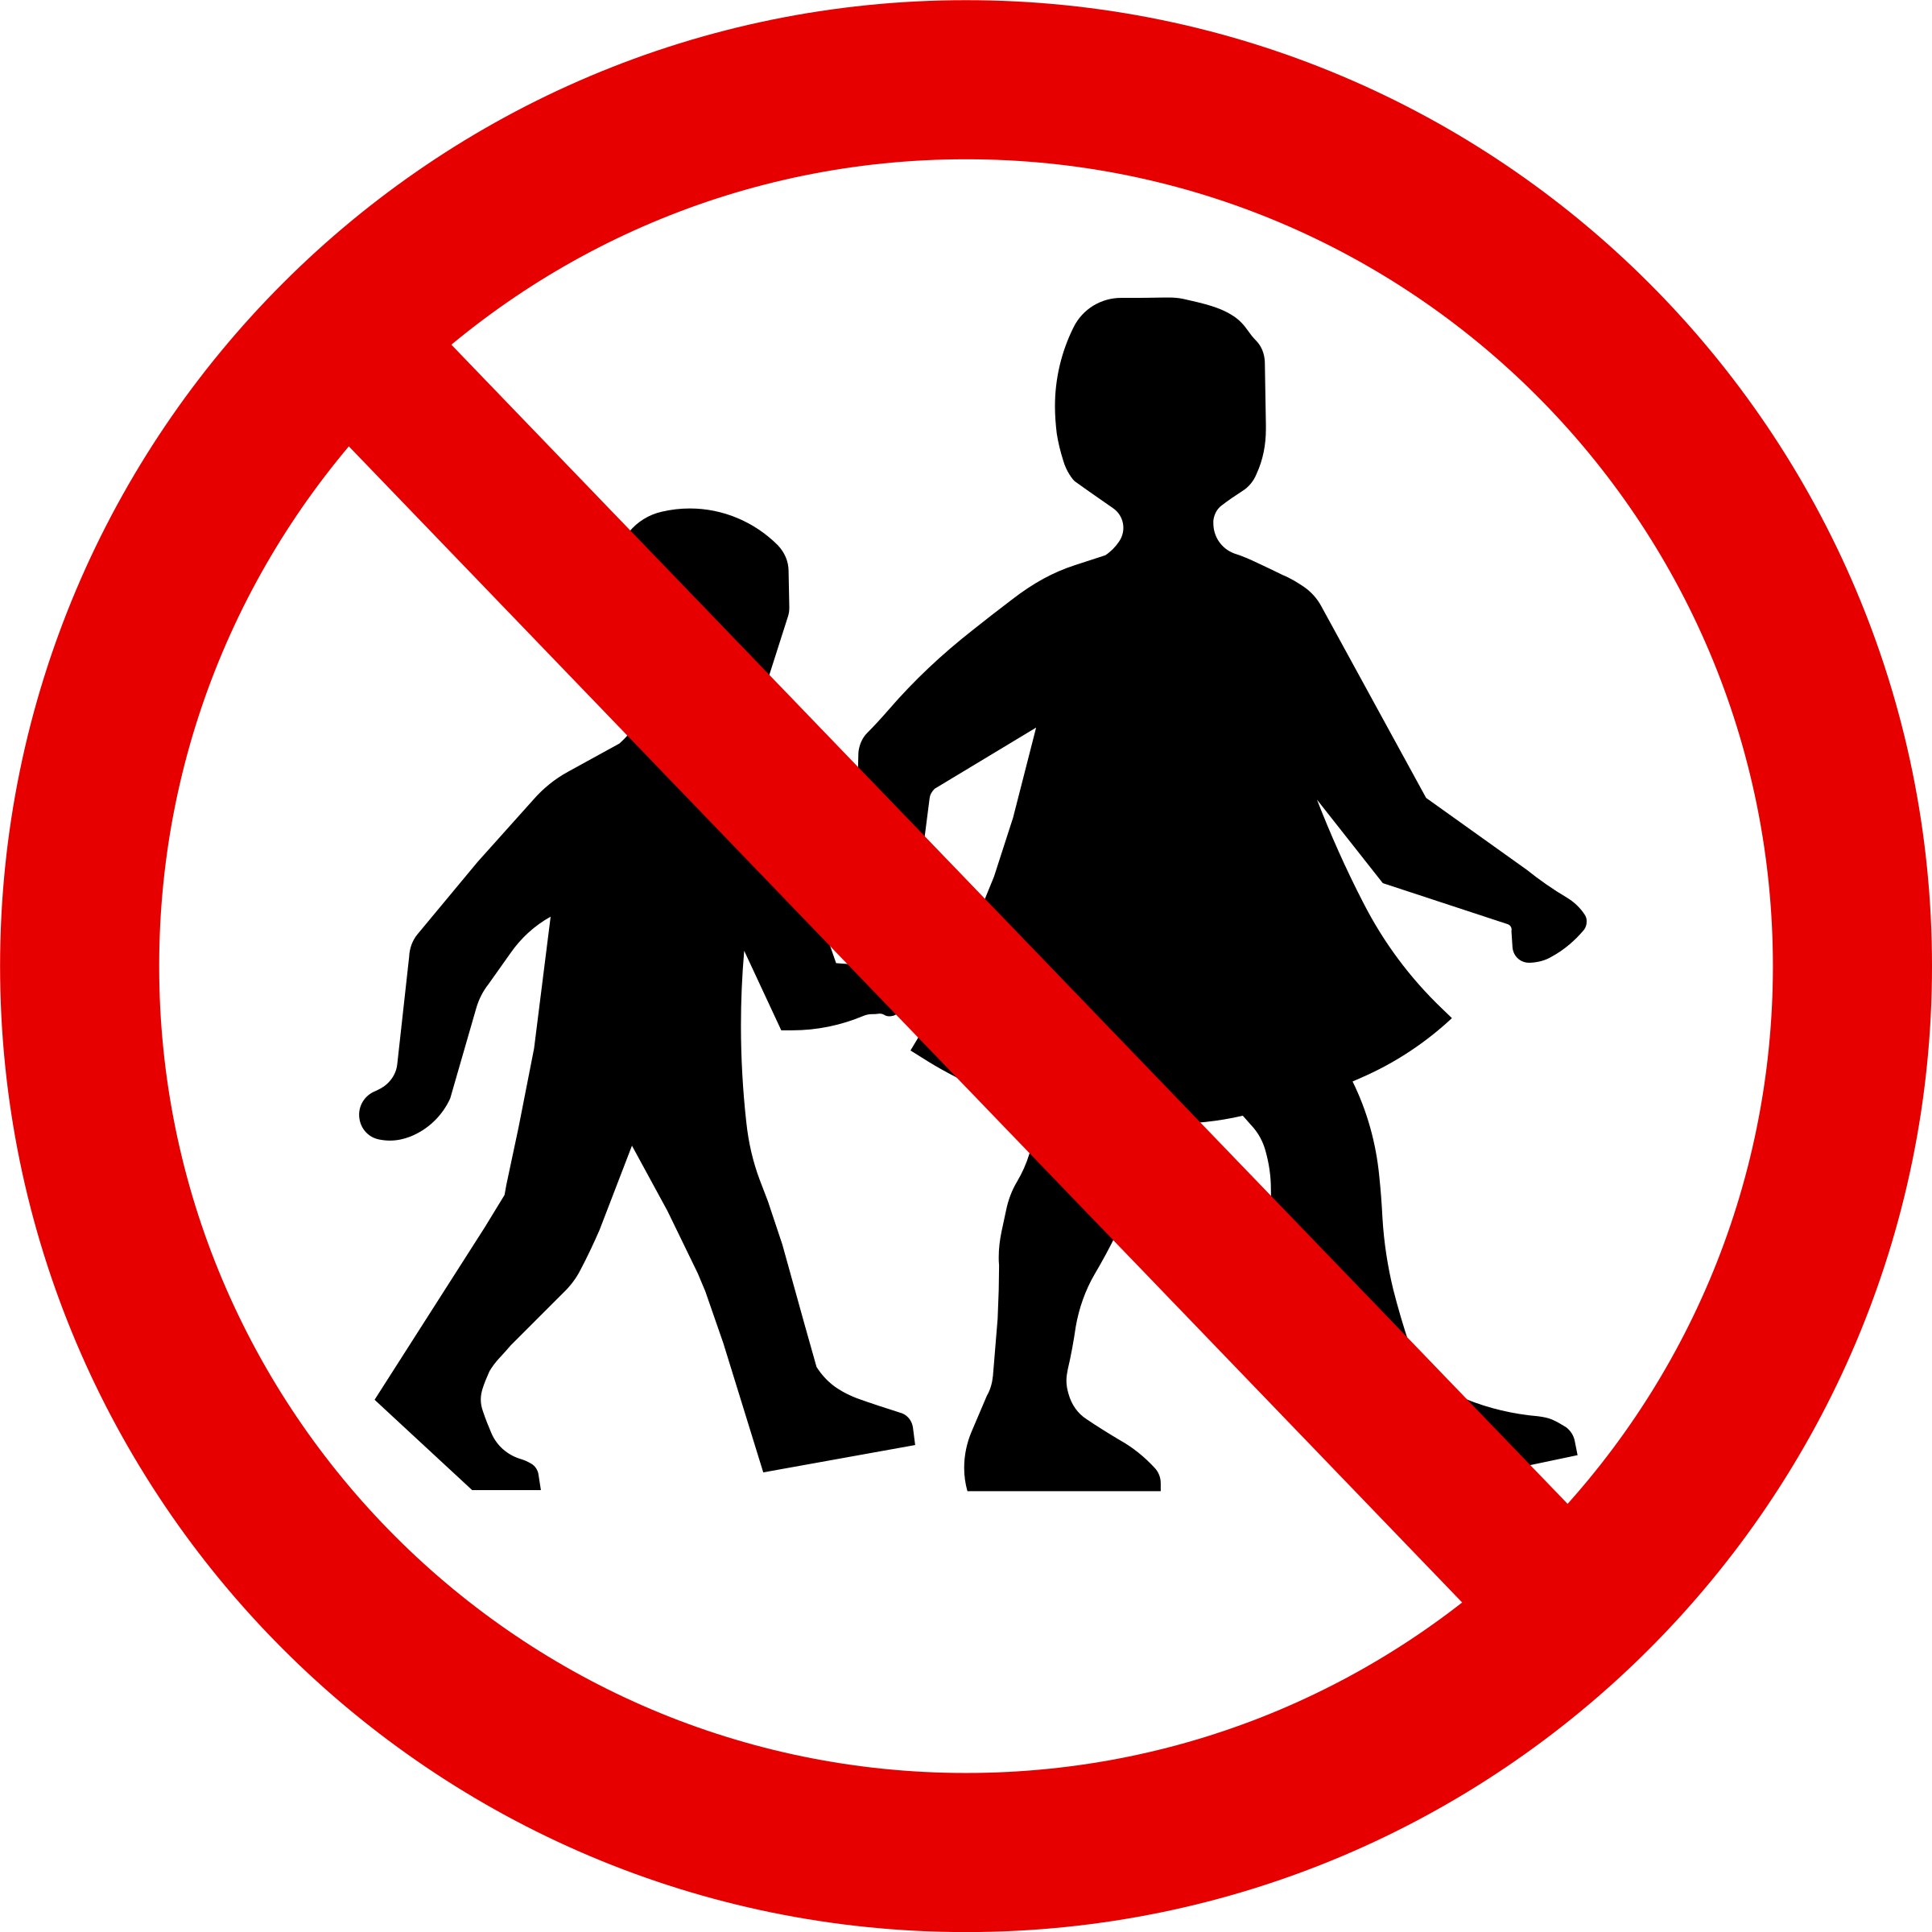 Circle clipart road. No children sign